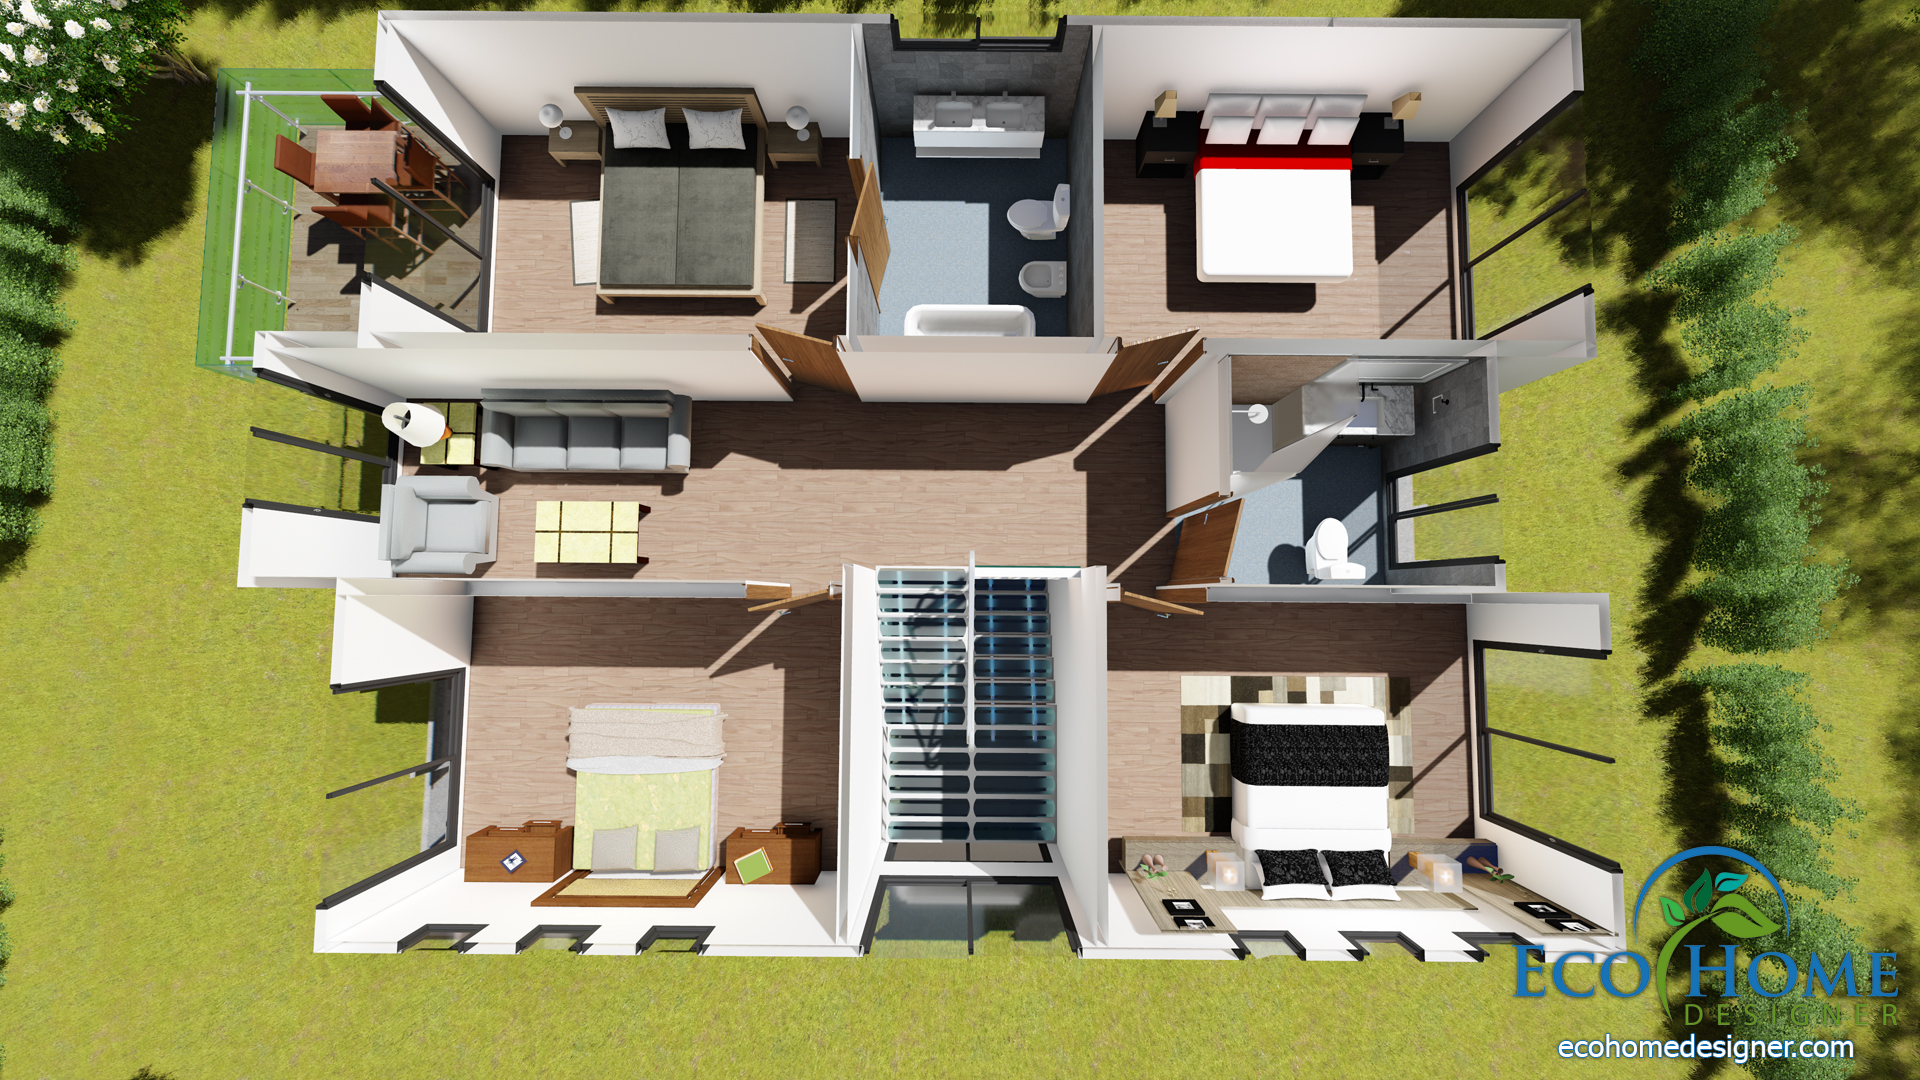 Best Kitchen Gallery: 40 Ft Container House Plans 40ft Container House Plans of 32 X 40 Shipping Container Homes on rachelxblog.com